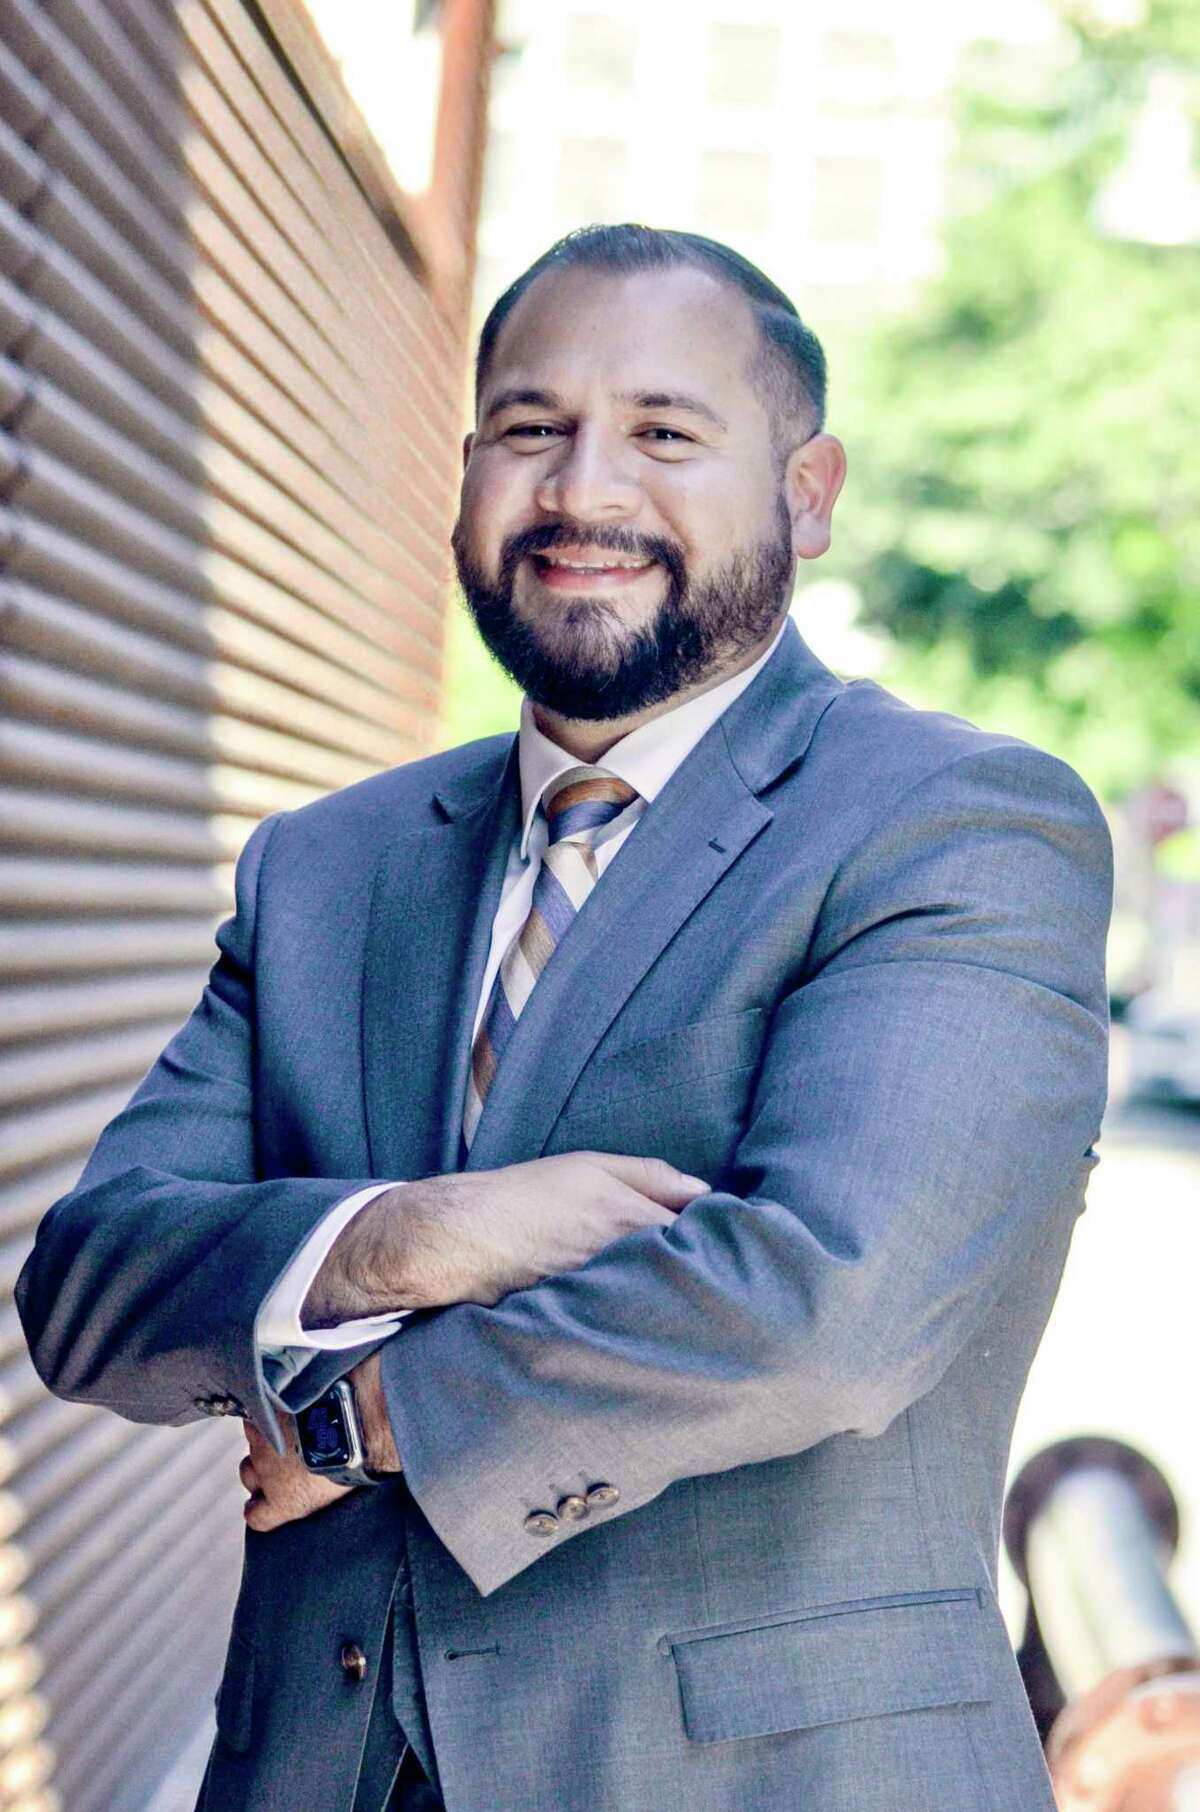 St. Pius X High School announced that Daniel P. Martinez will be its new Head of School effective this summer